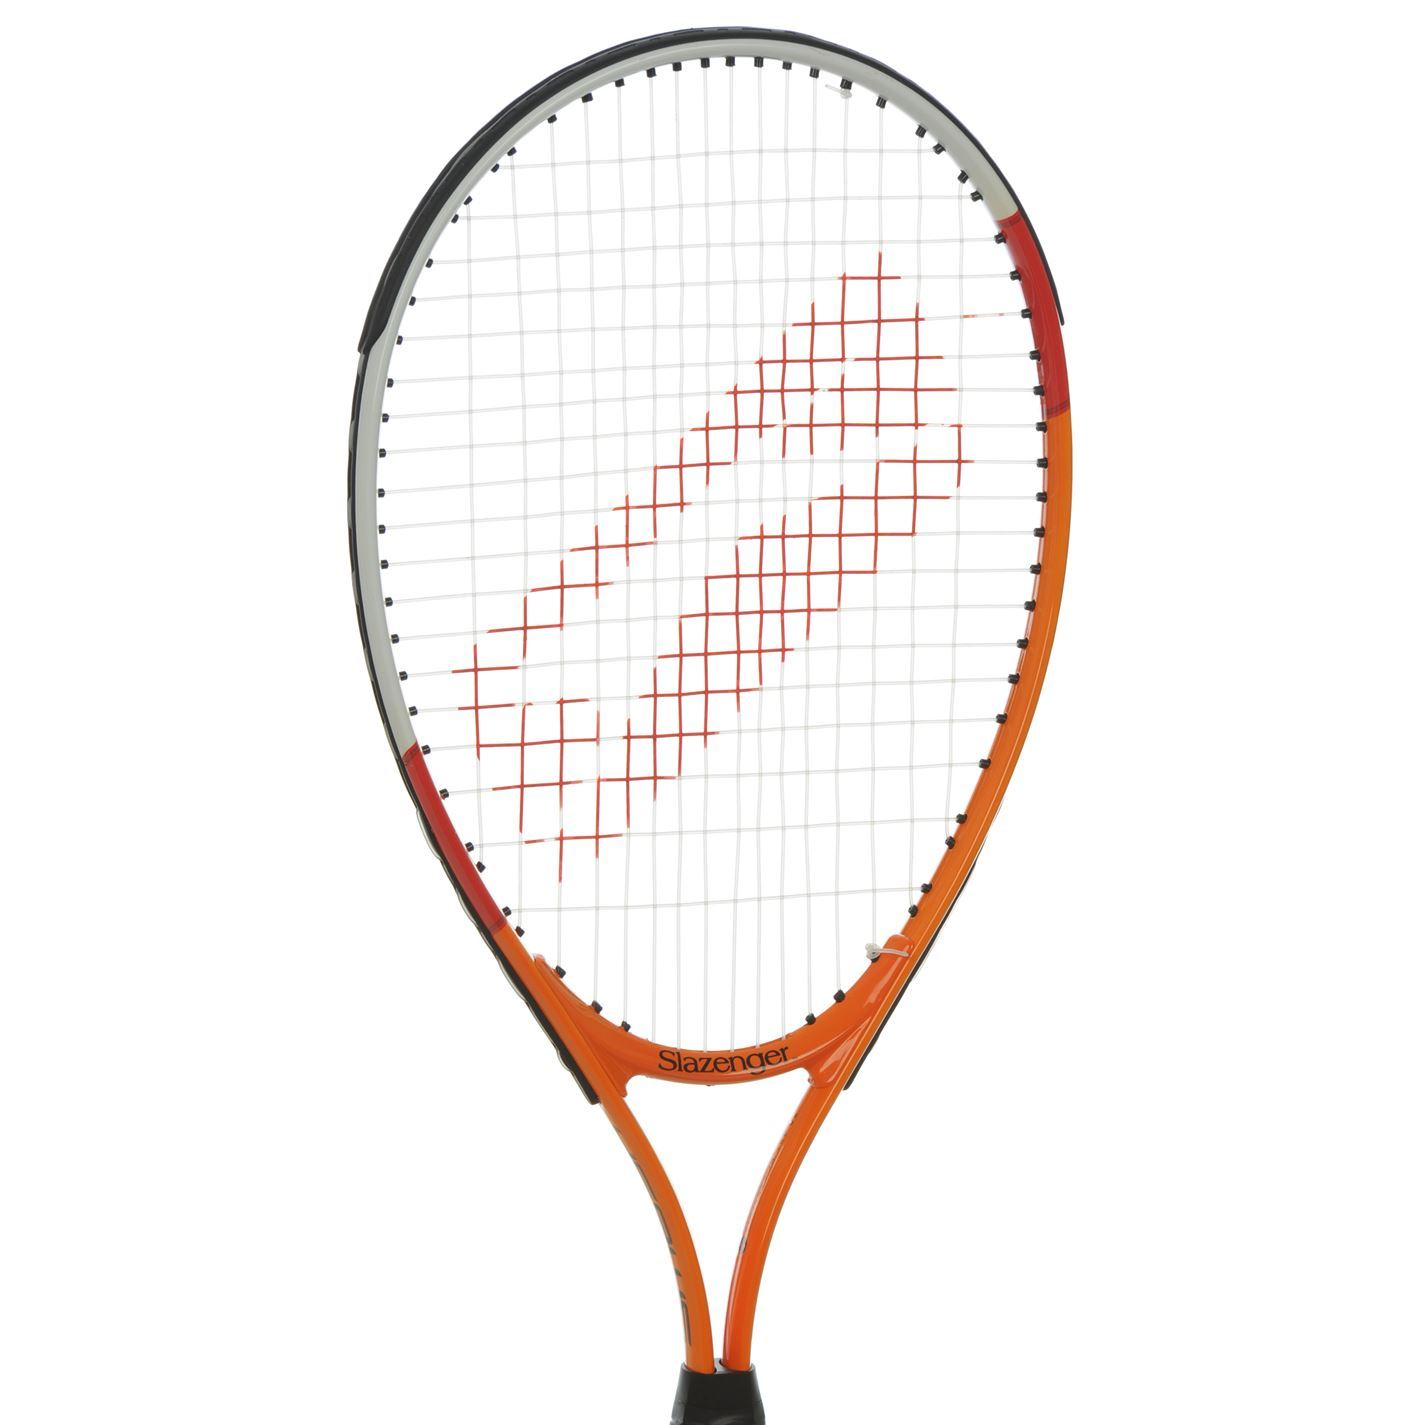 Slazenger Tennis Rackets Slazenger Smash Tennis Racket